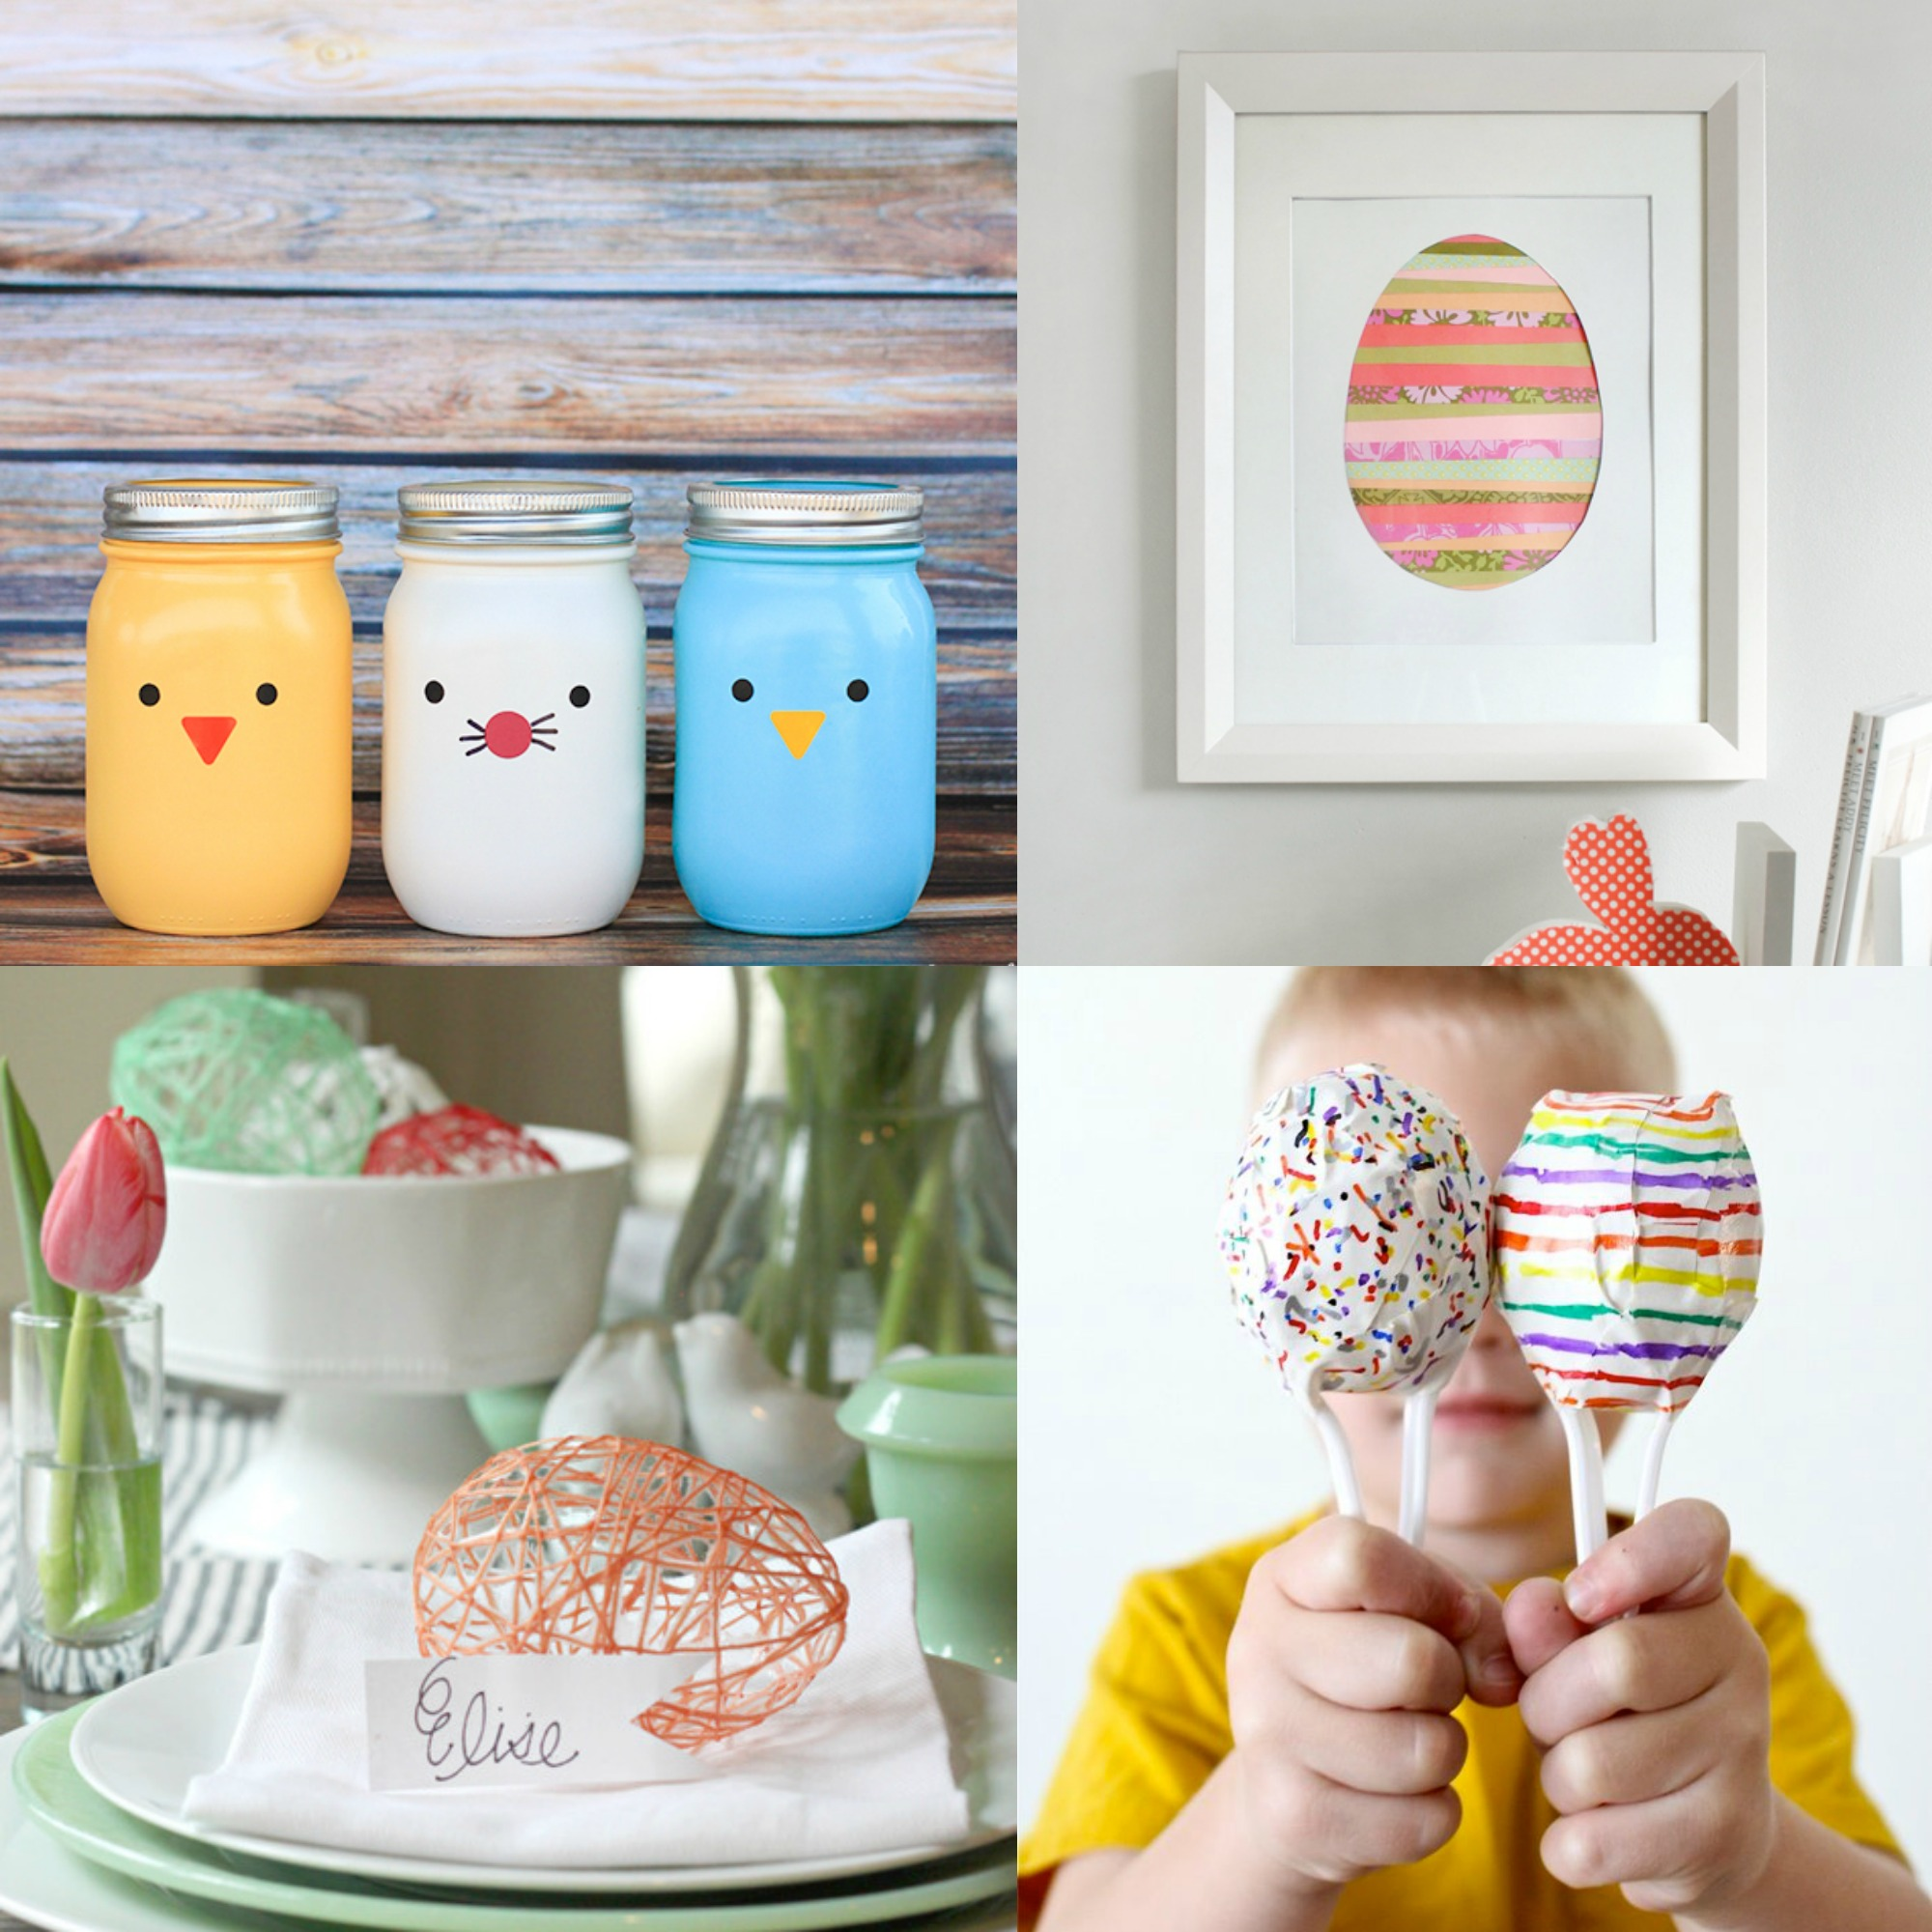 DIY Easter Crafts, Games, & More!